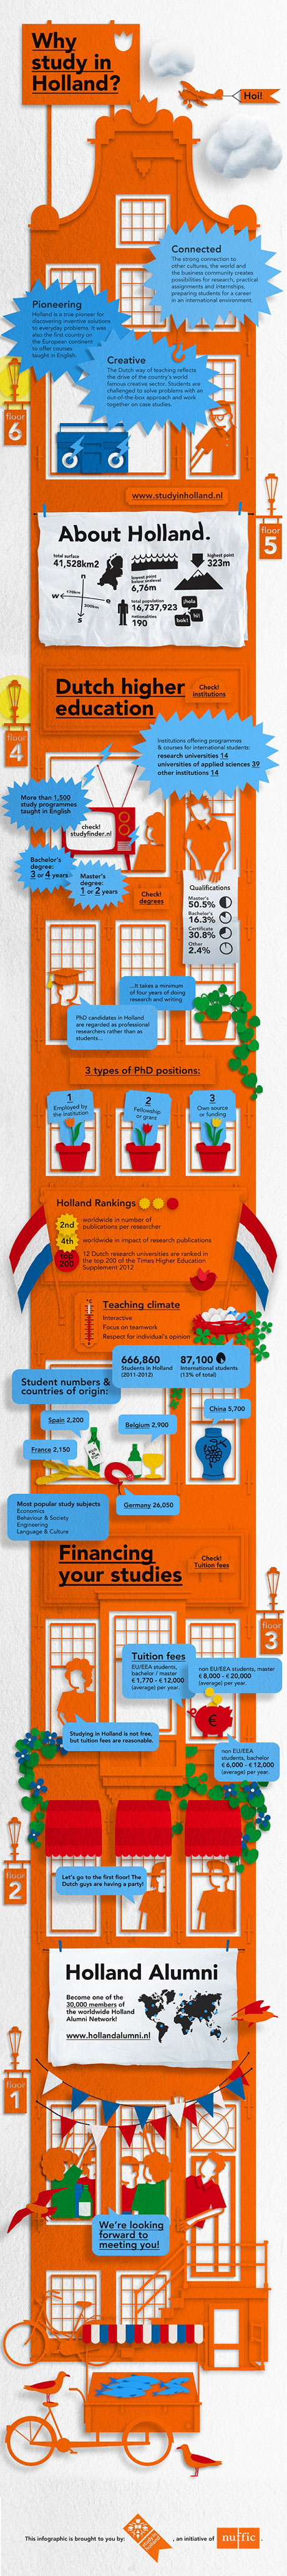 whystudyinhollandinfographic